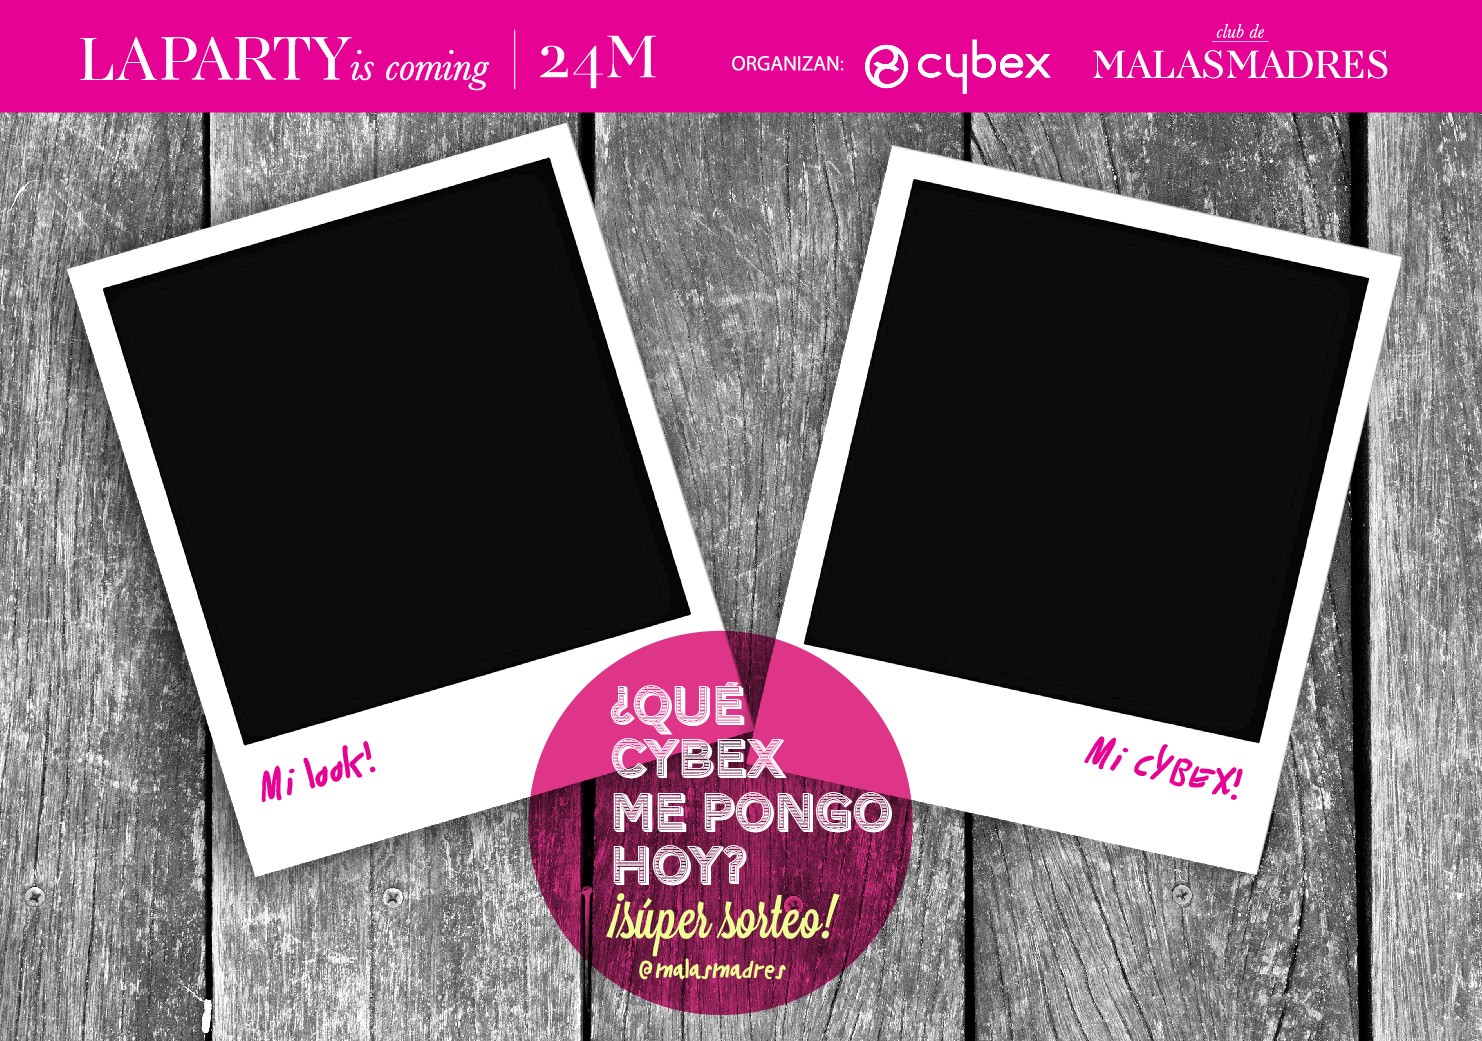 LA PARTY is coming: súper sorteo #queCYBEXmepongo